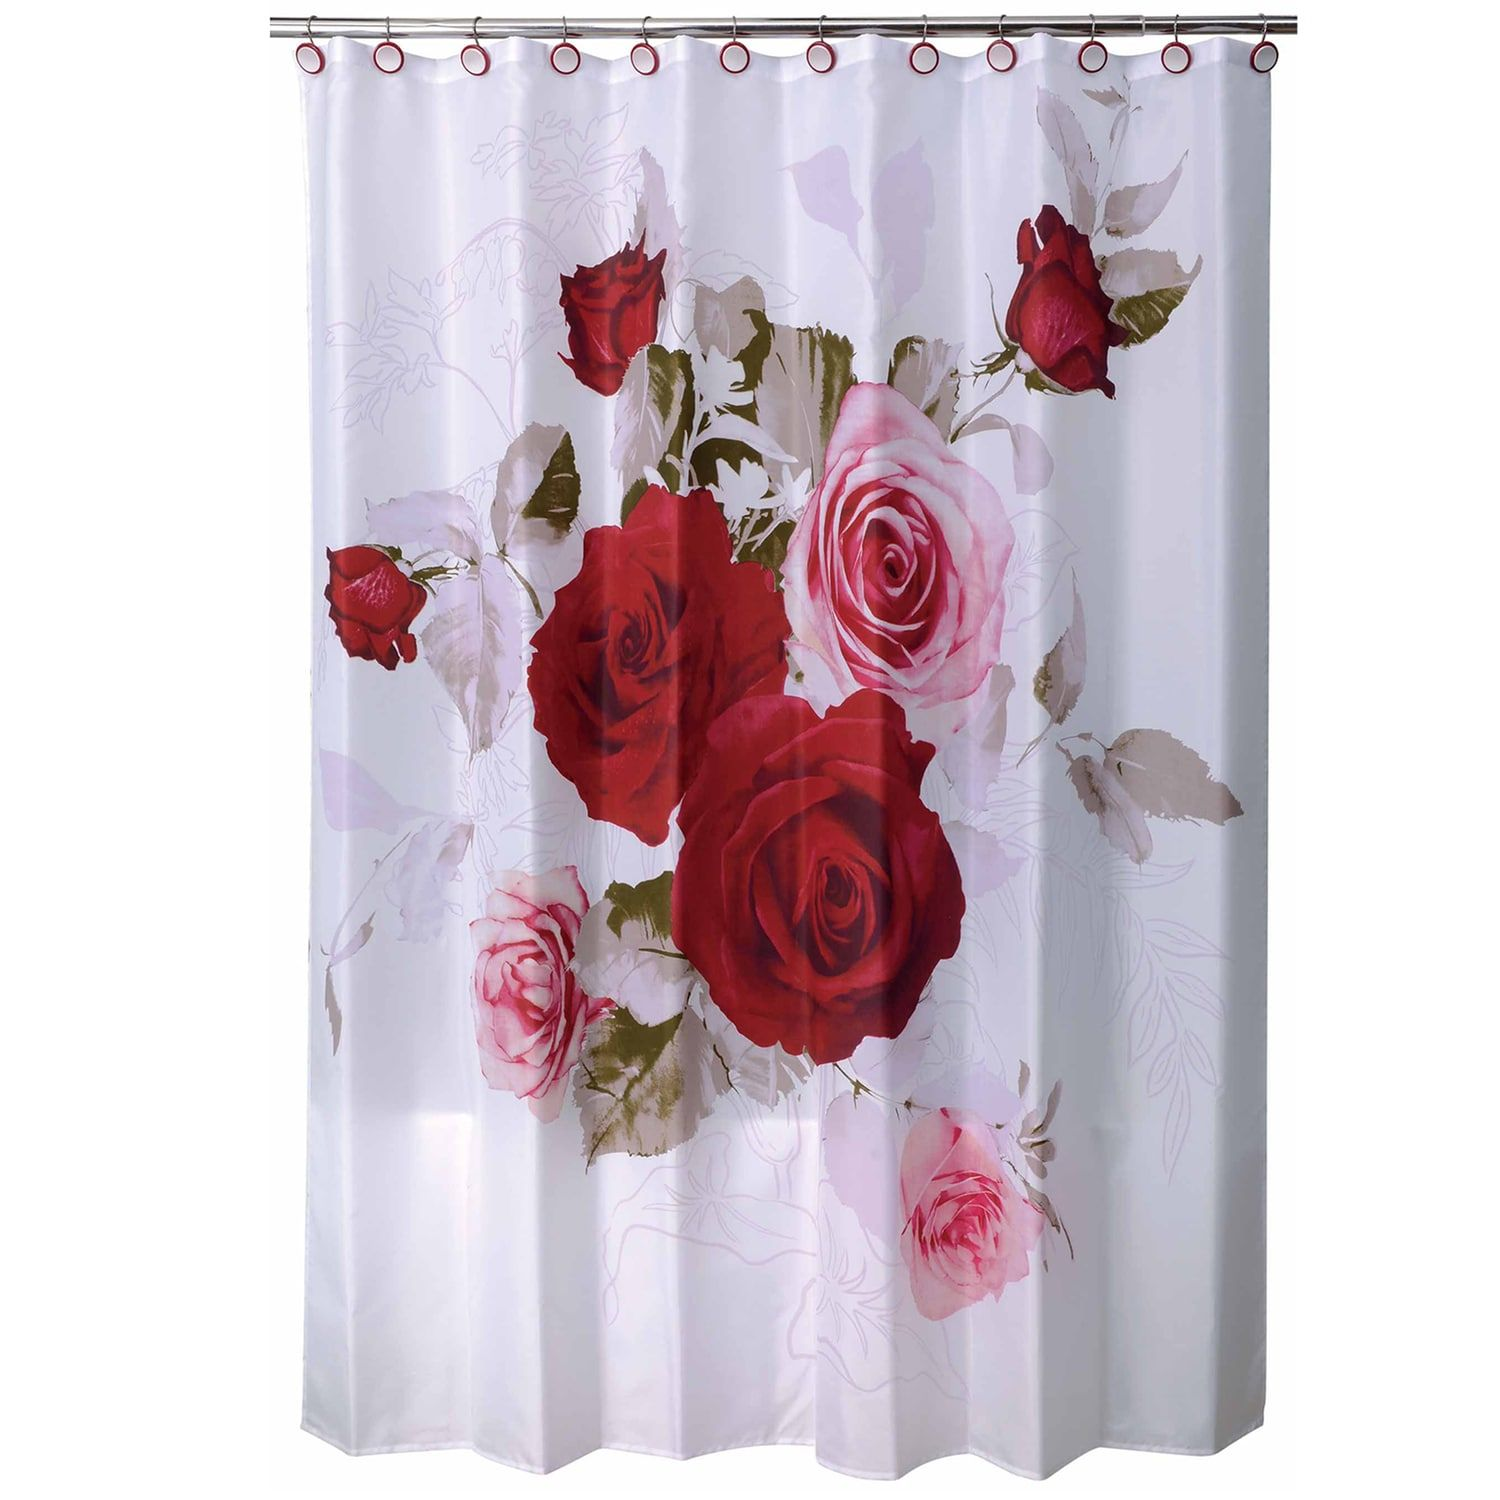 Allure Home Creations Prelude Shower Curtain Creations Home